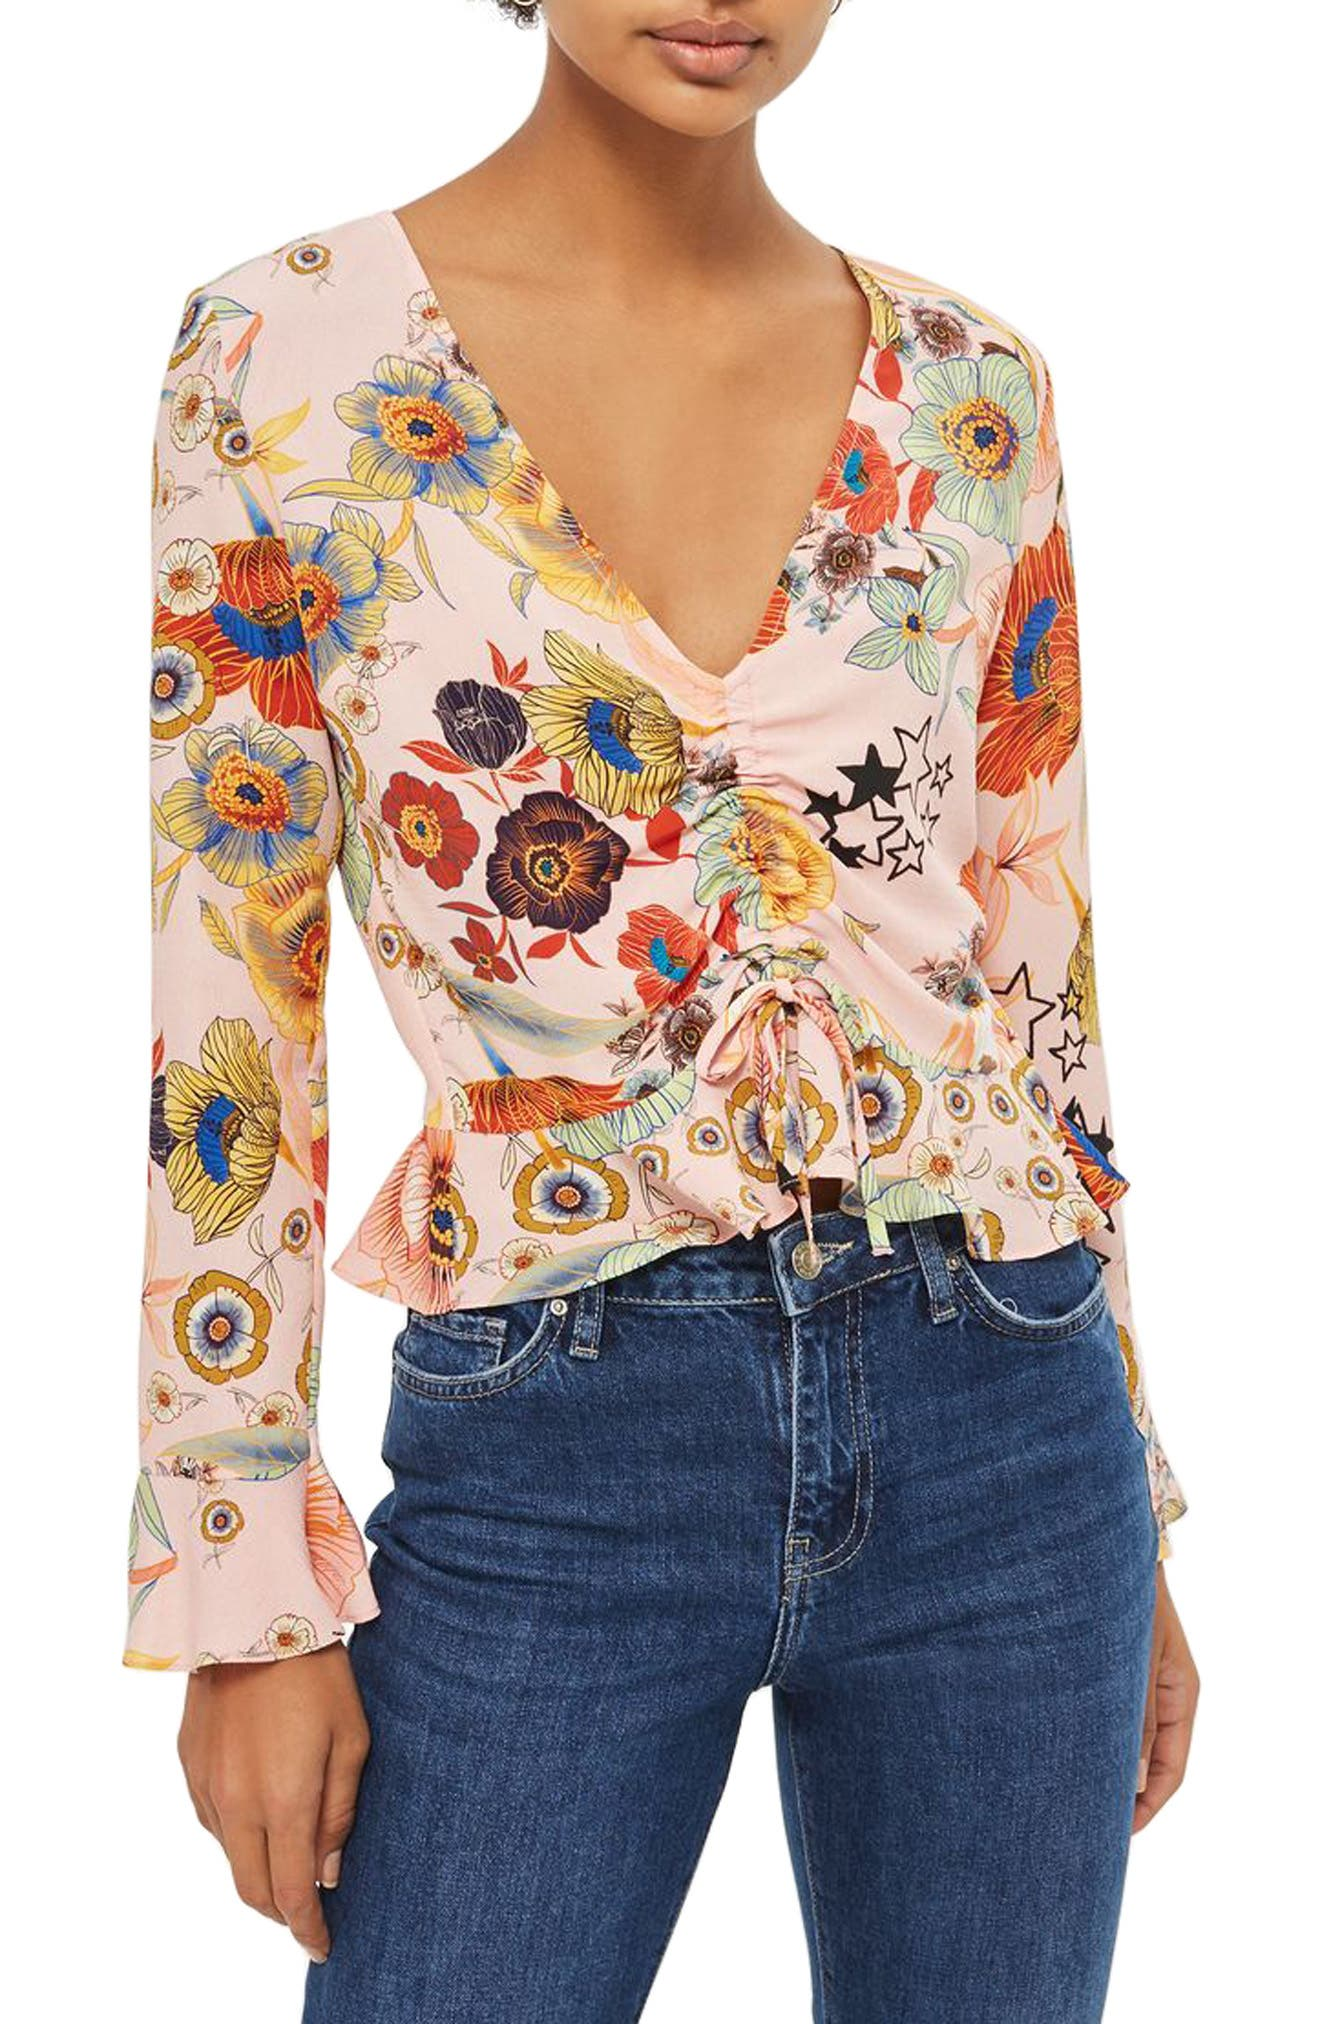 Alternate Image 1 Selected - Topshop Star & Floral Print Ruched Blouse